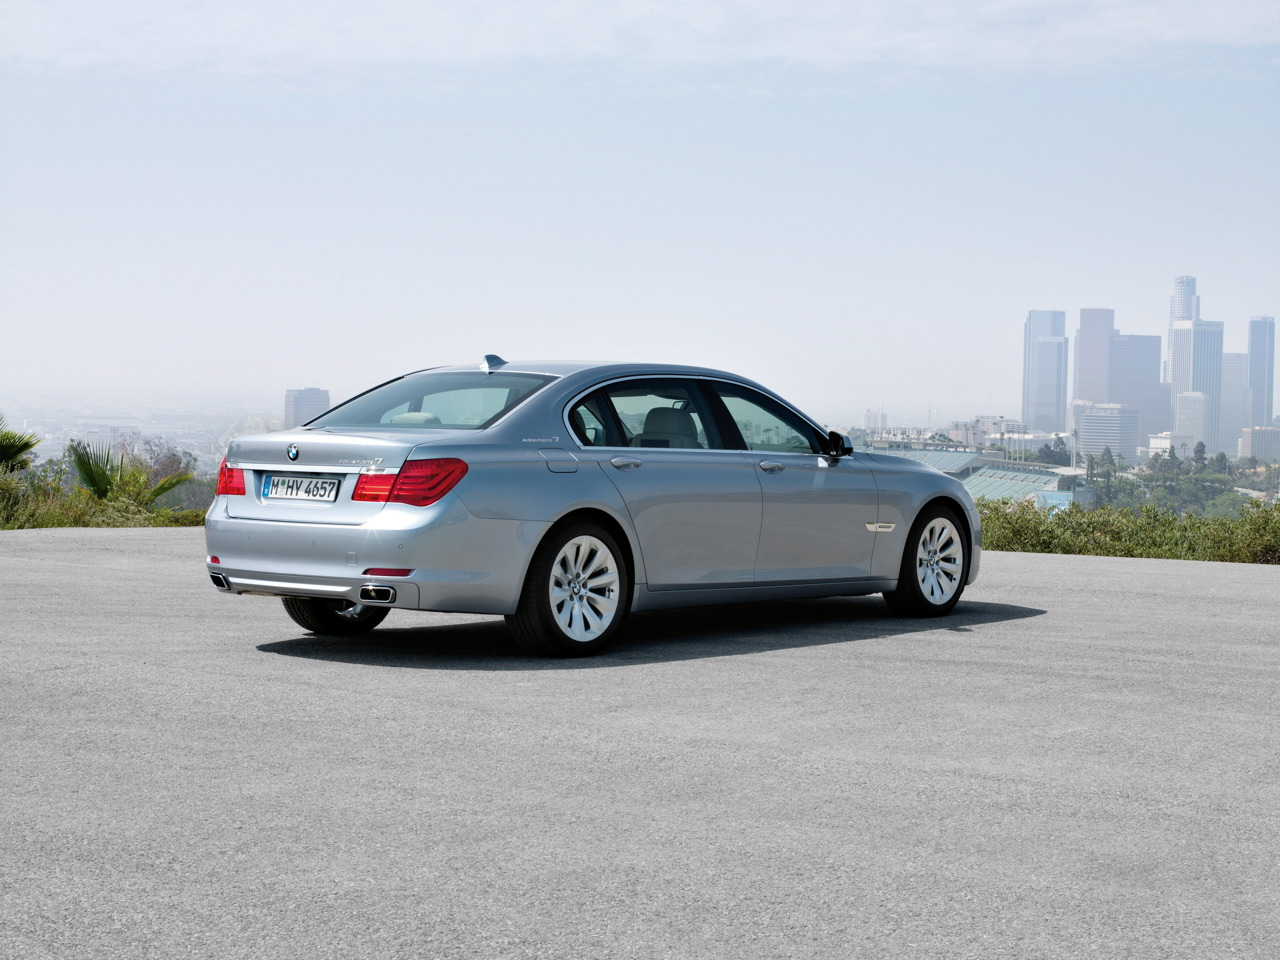 2010 BMW ActiveHybrid 7-Series Officially Revealed